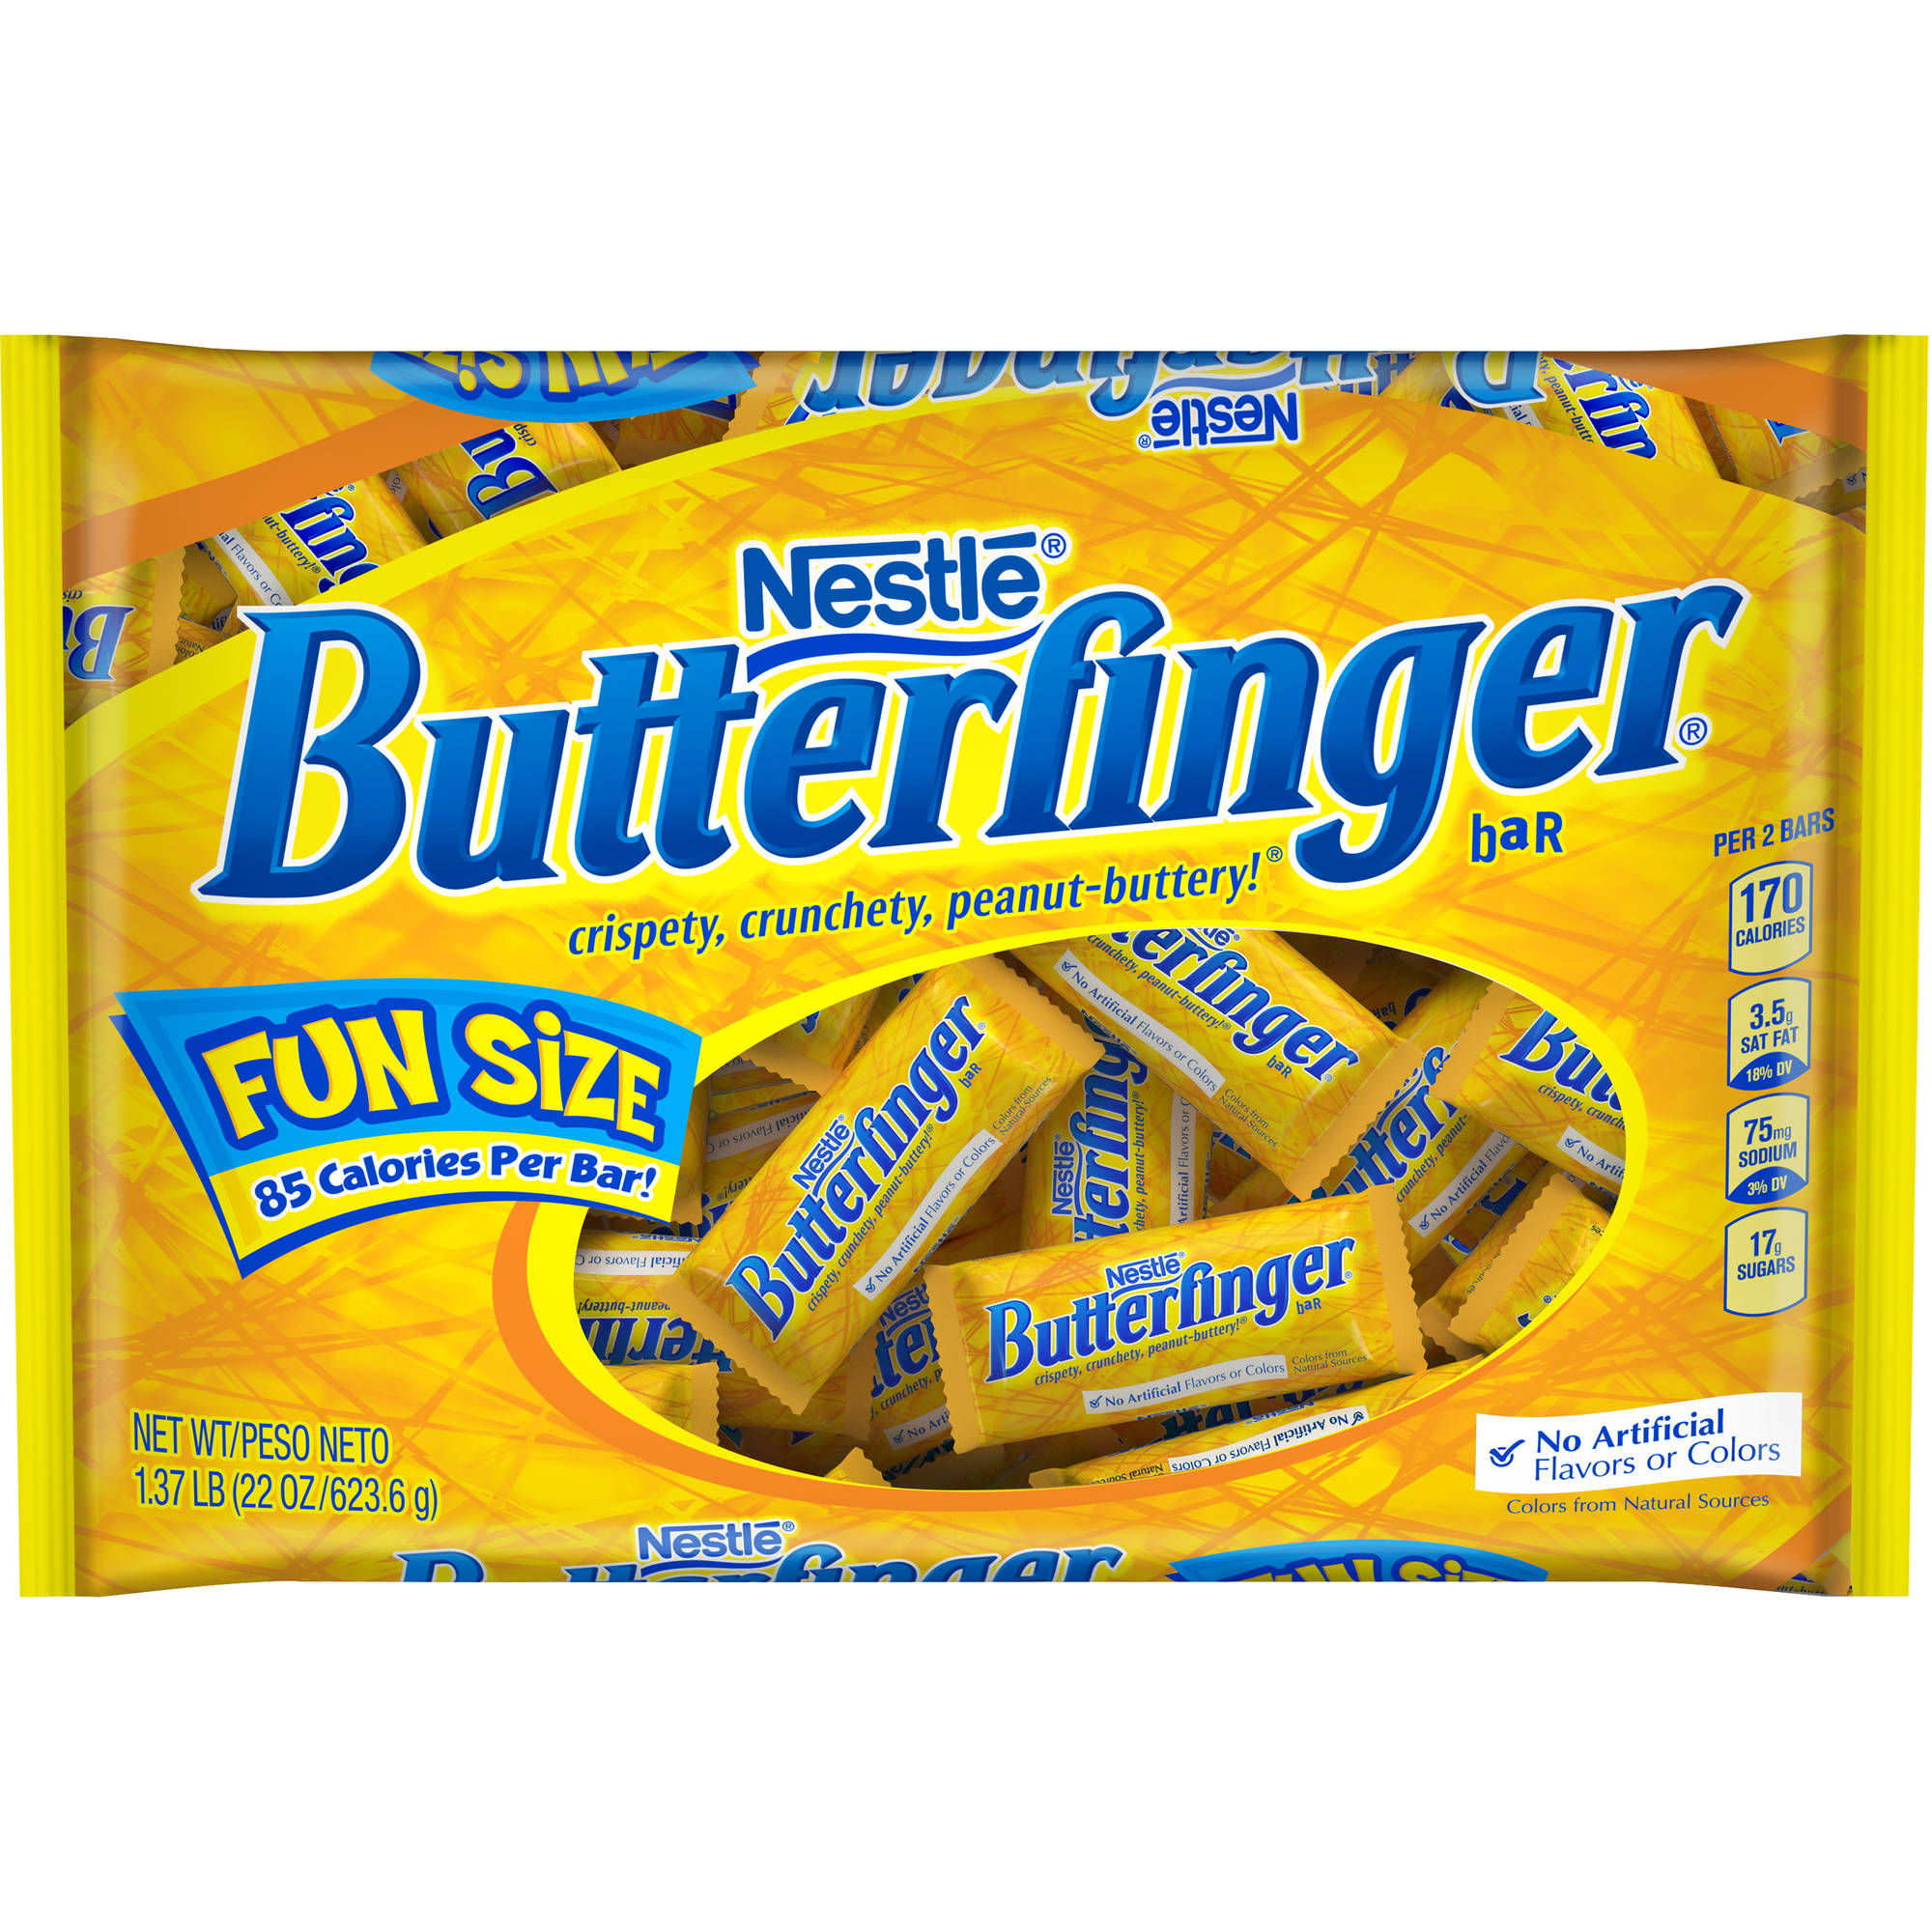 Butterfinger Fun Size Chocolate Halloween Candy Bars, 22 oz